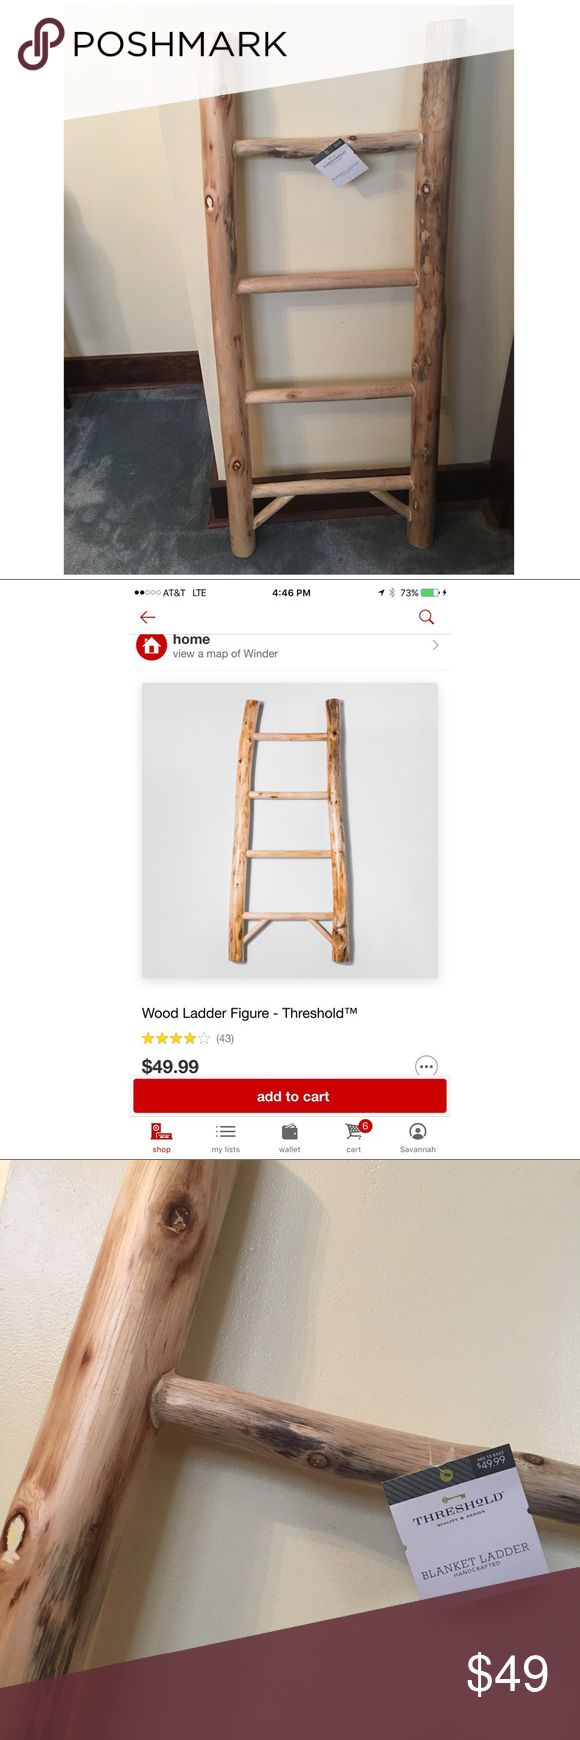 Threshold Blanket Ladder Threshold Blanket Ladder •Check picture 2 for a screenshot of the Ladder & Price  •Purchased from target  •Retail-$49.99 •Never used tag is still on it •Brand new ( Won't ever use it ) •Smooth wood finish •Wood finish-natural •Indoor only •Dimensions-Overall-42inches(H) x 18.3 (W) x 2.0 (D) •Perfect finish to a living, bedroom or entryway  •It weighs about 10 pounds overall   Happy Shopping!!! Threshold Other